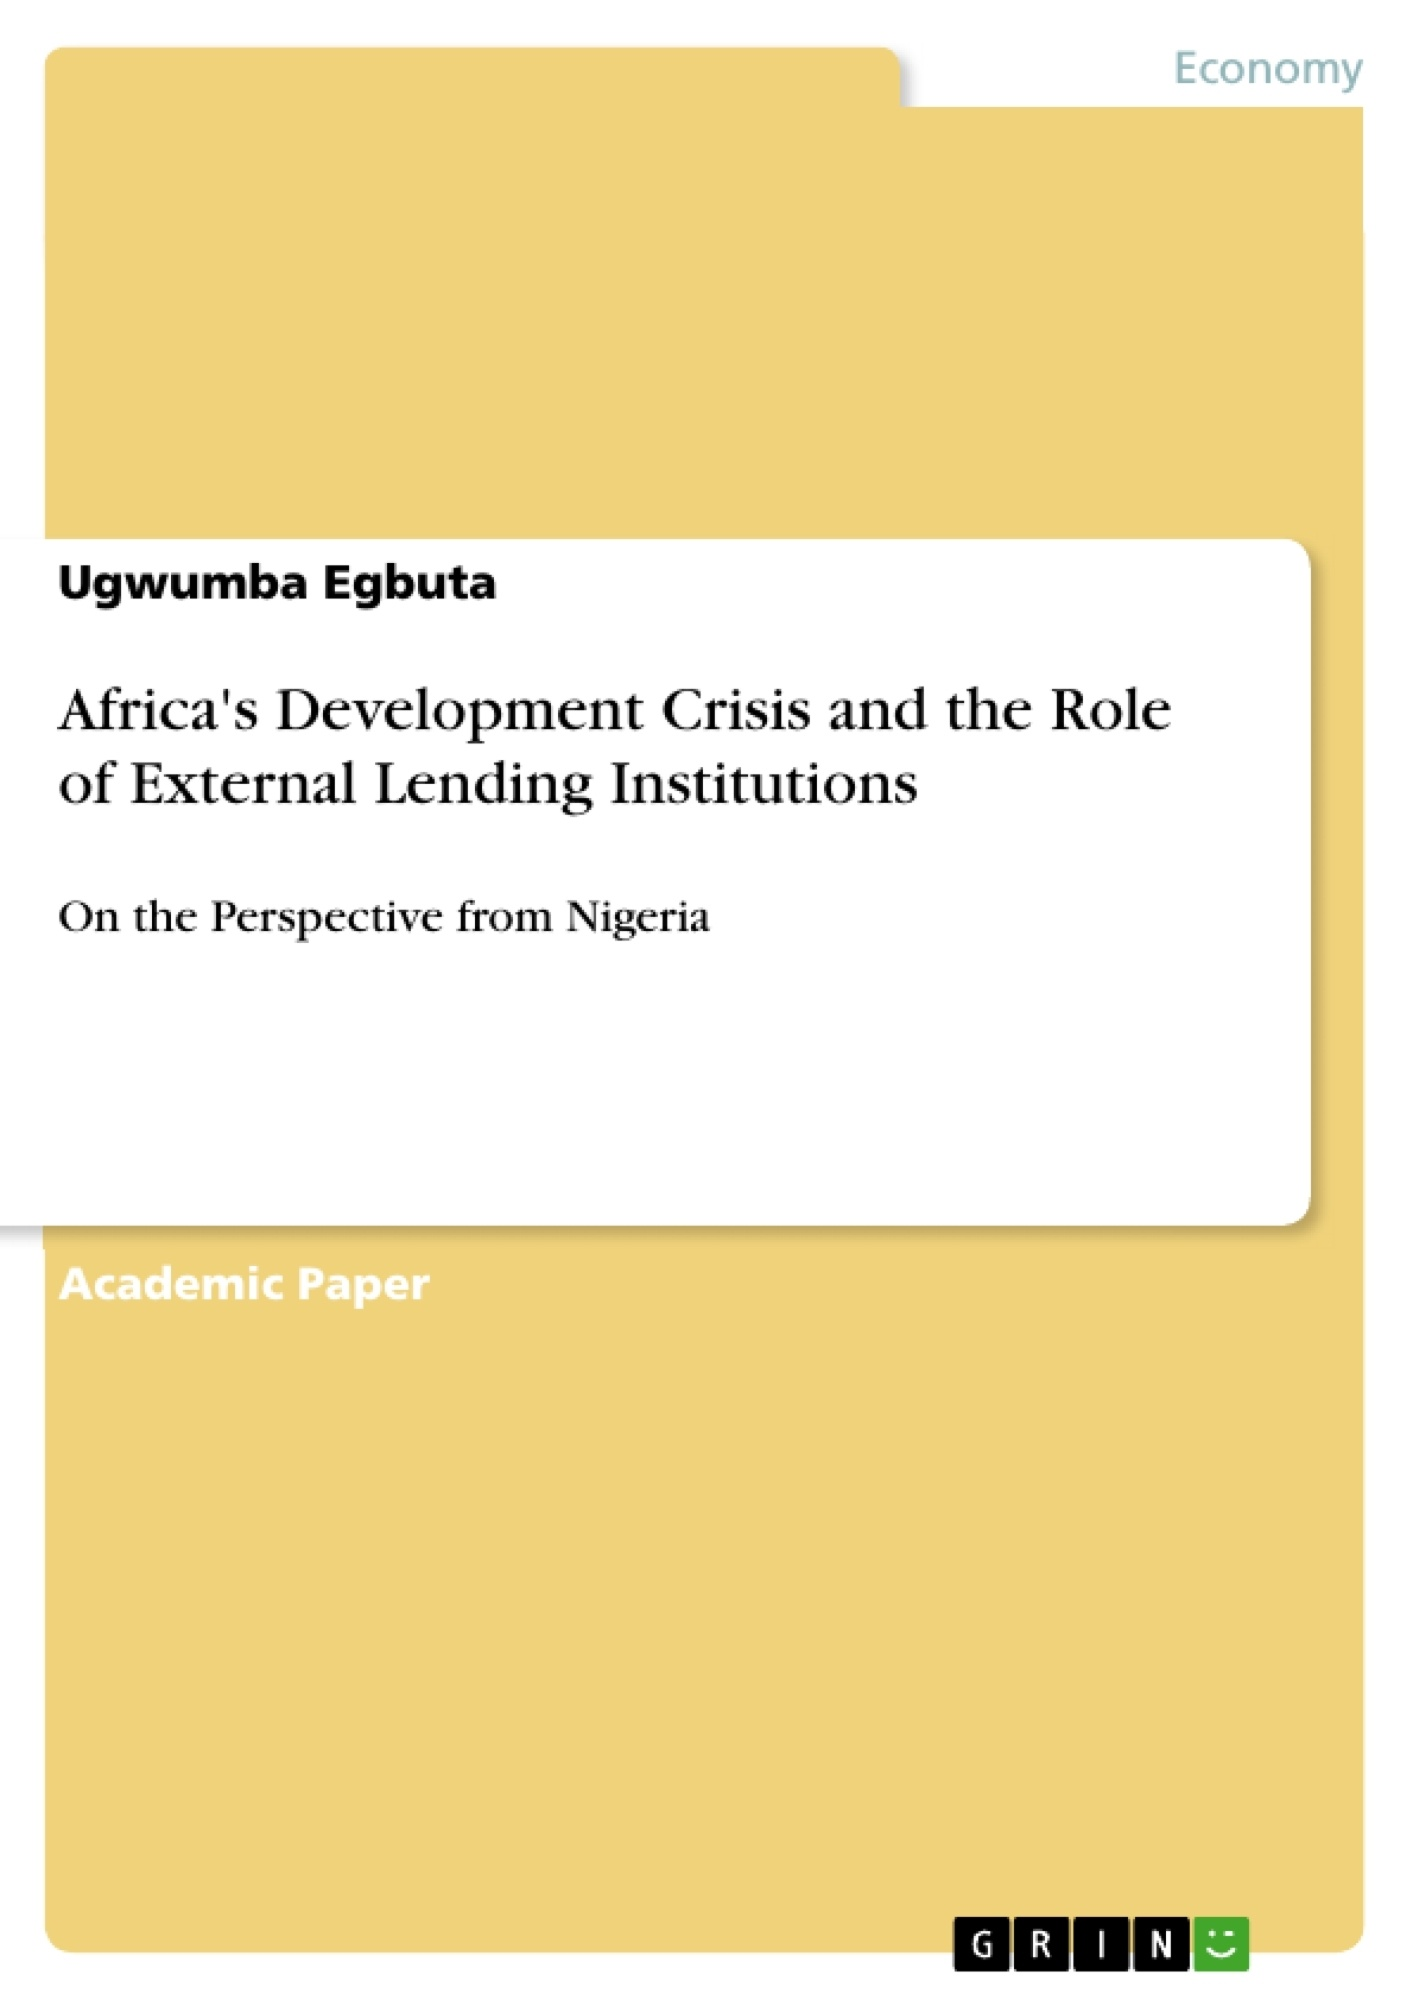 Title: Africa's Development Crisis and the Role of External Lending Institutions